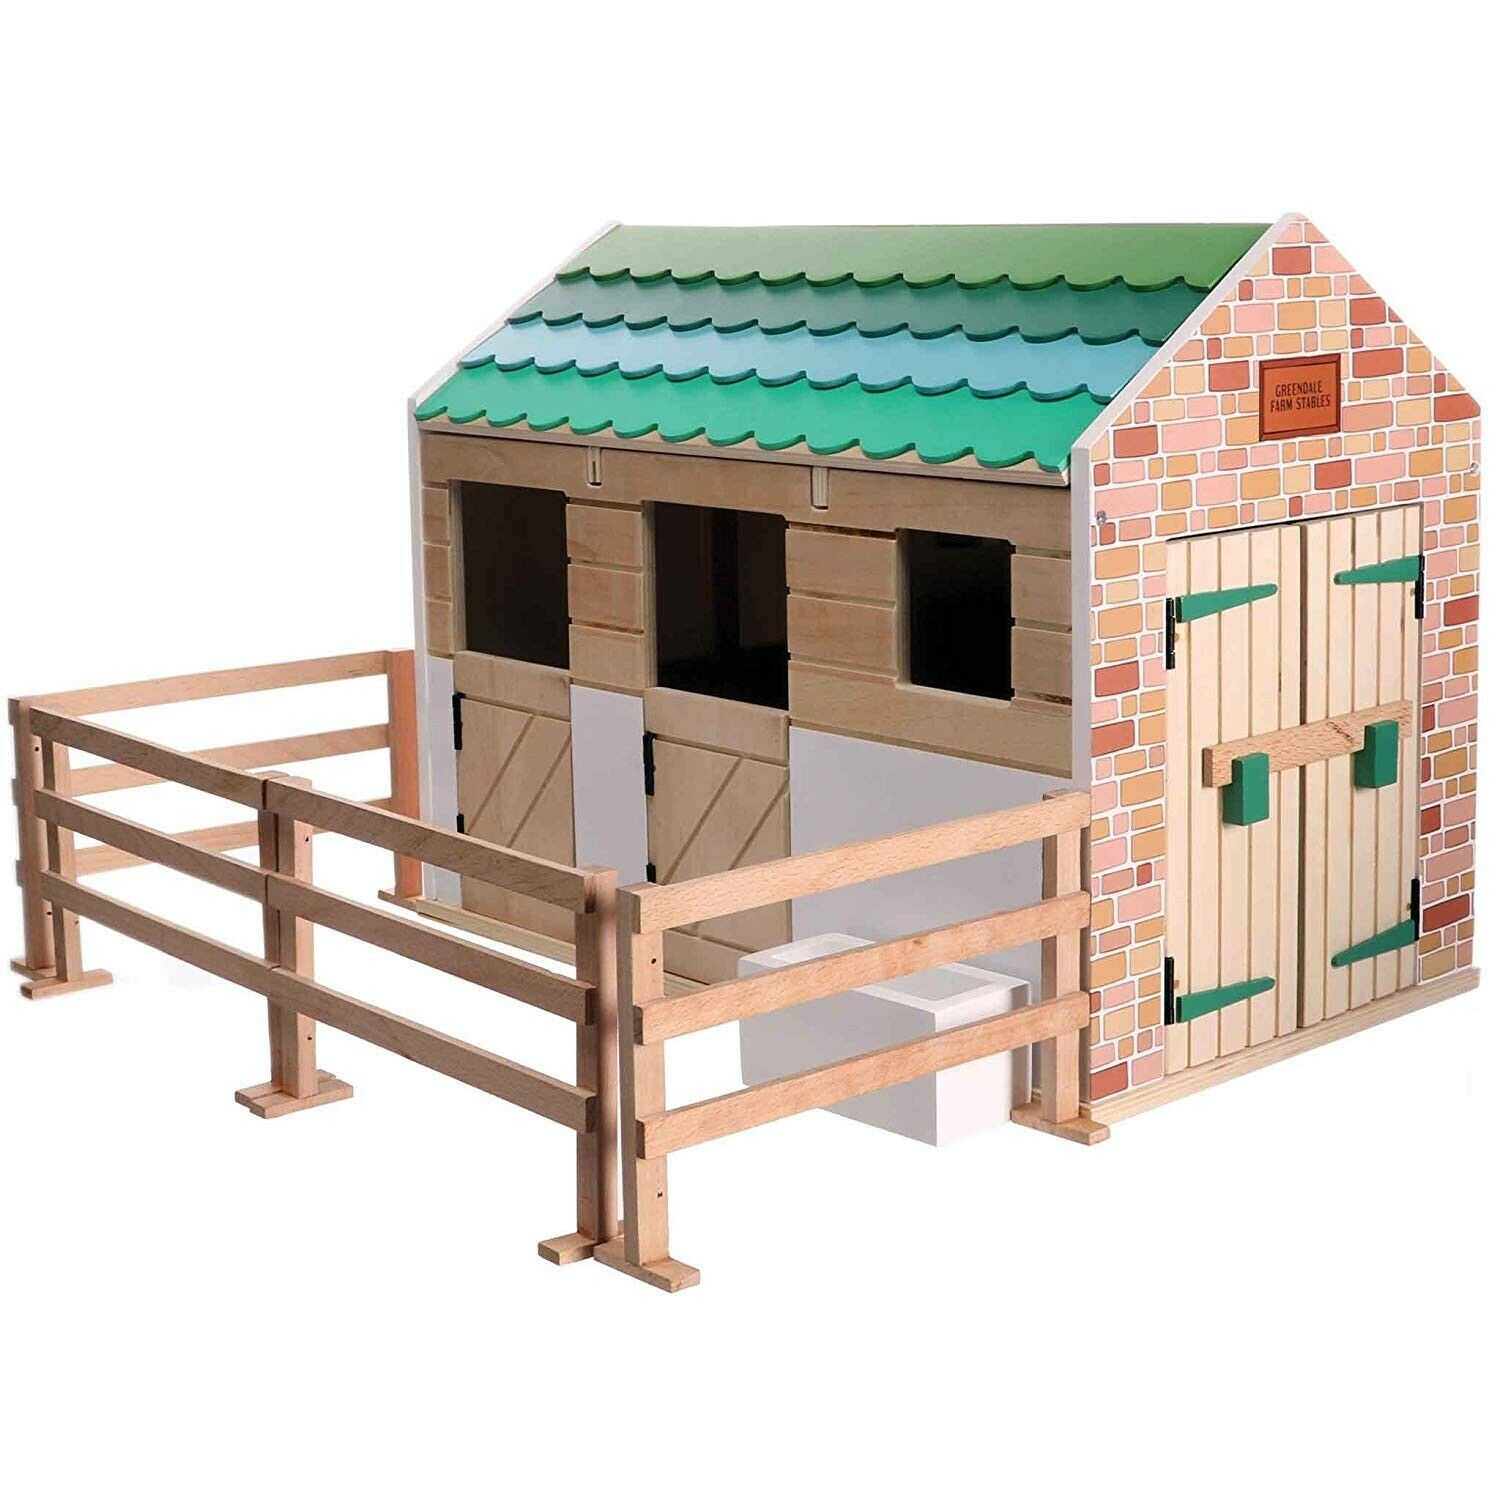 BIGJIGS LOTTIE Doll Pony STABLE WOODEN Toy EMPOWERING GIRLS 3 YEARS+ NEW